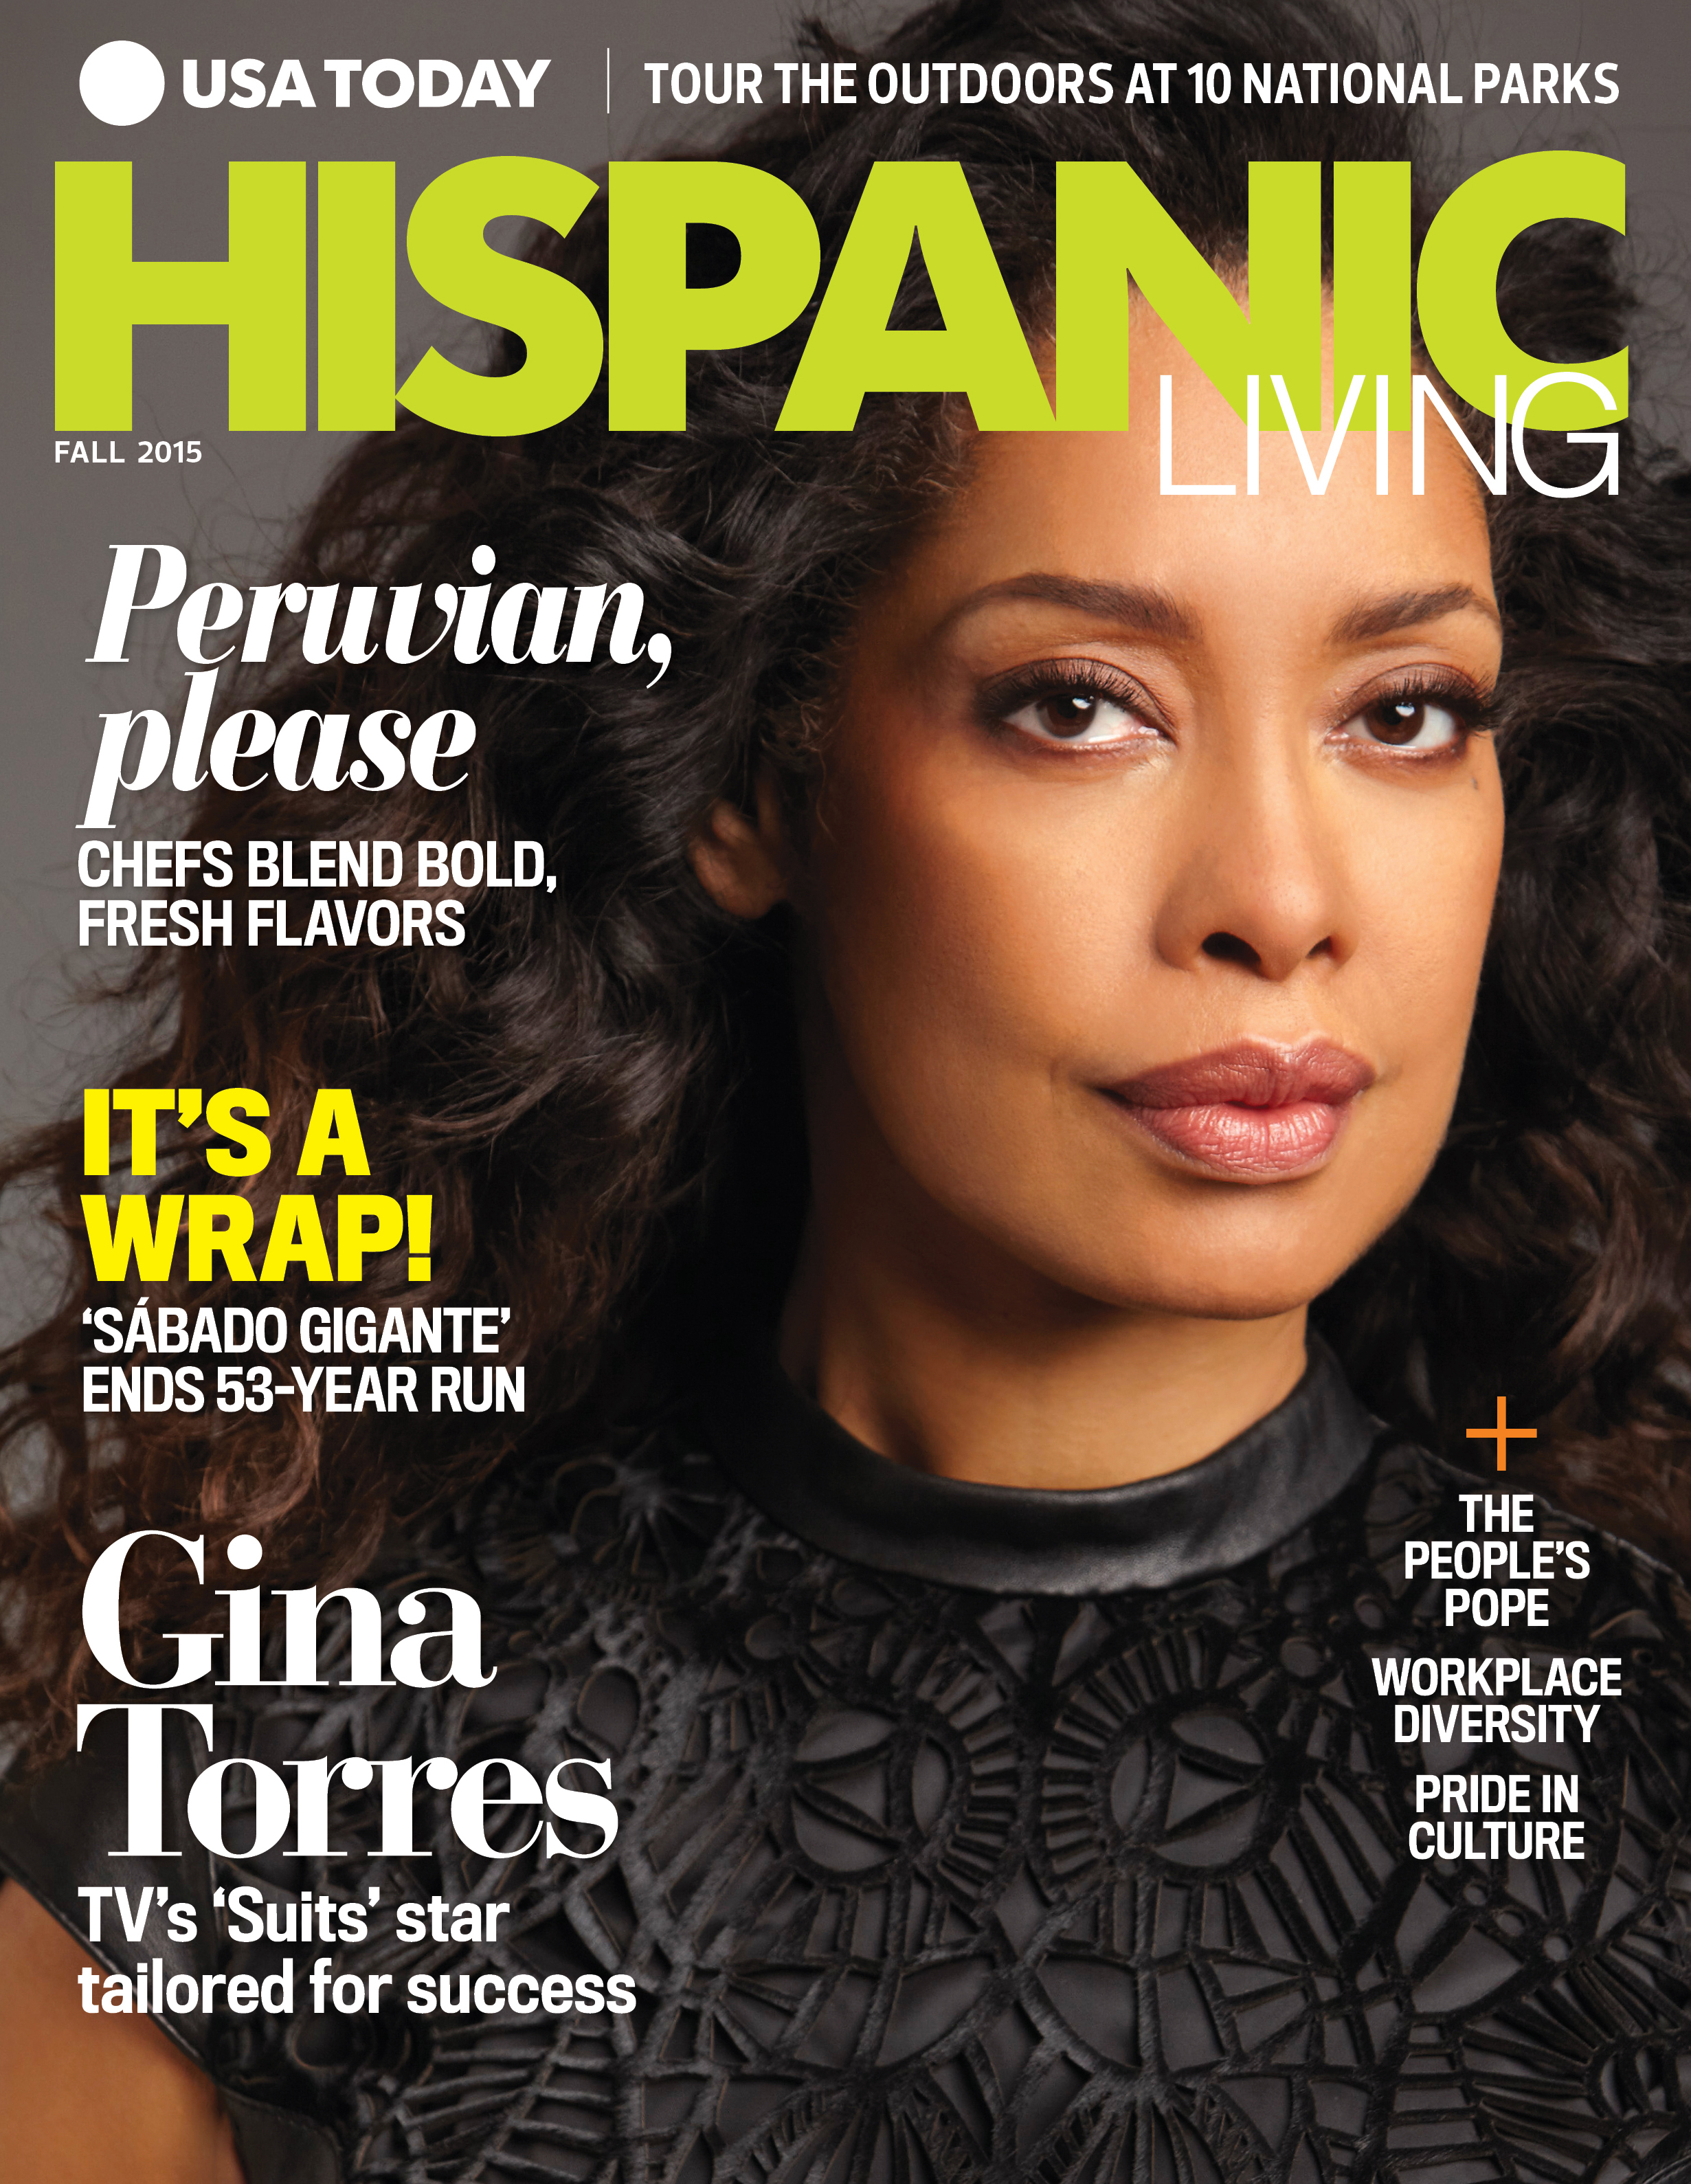 HISPANIC_COVER.jpg